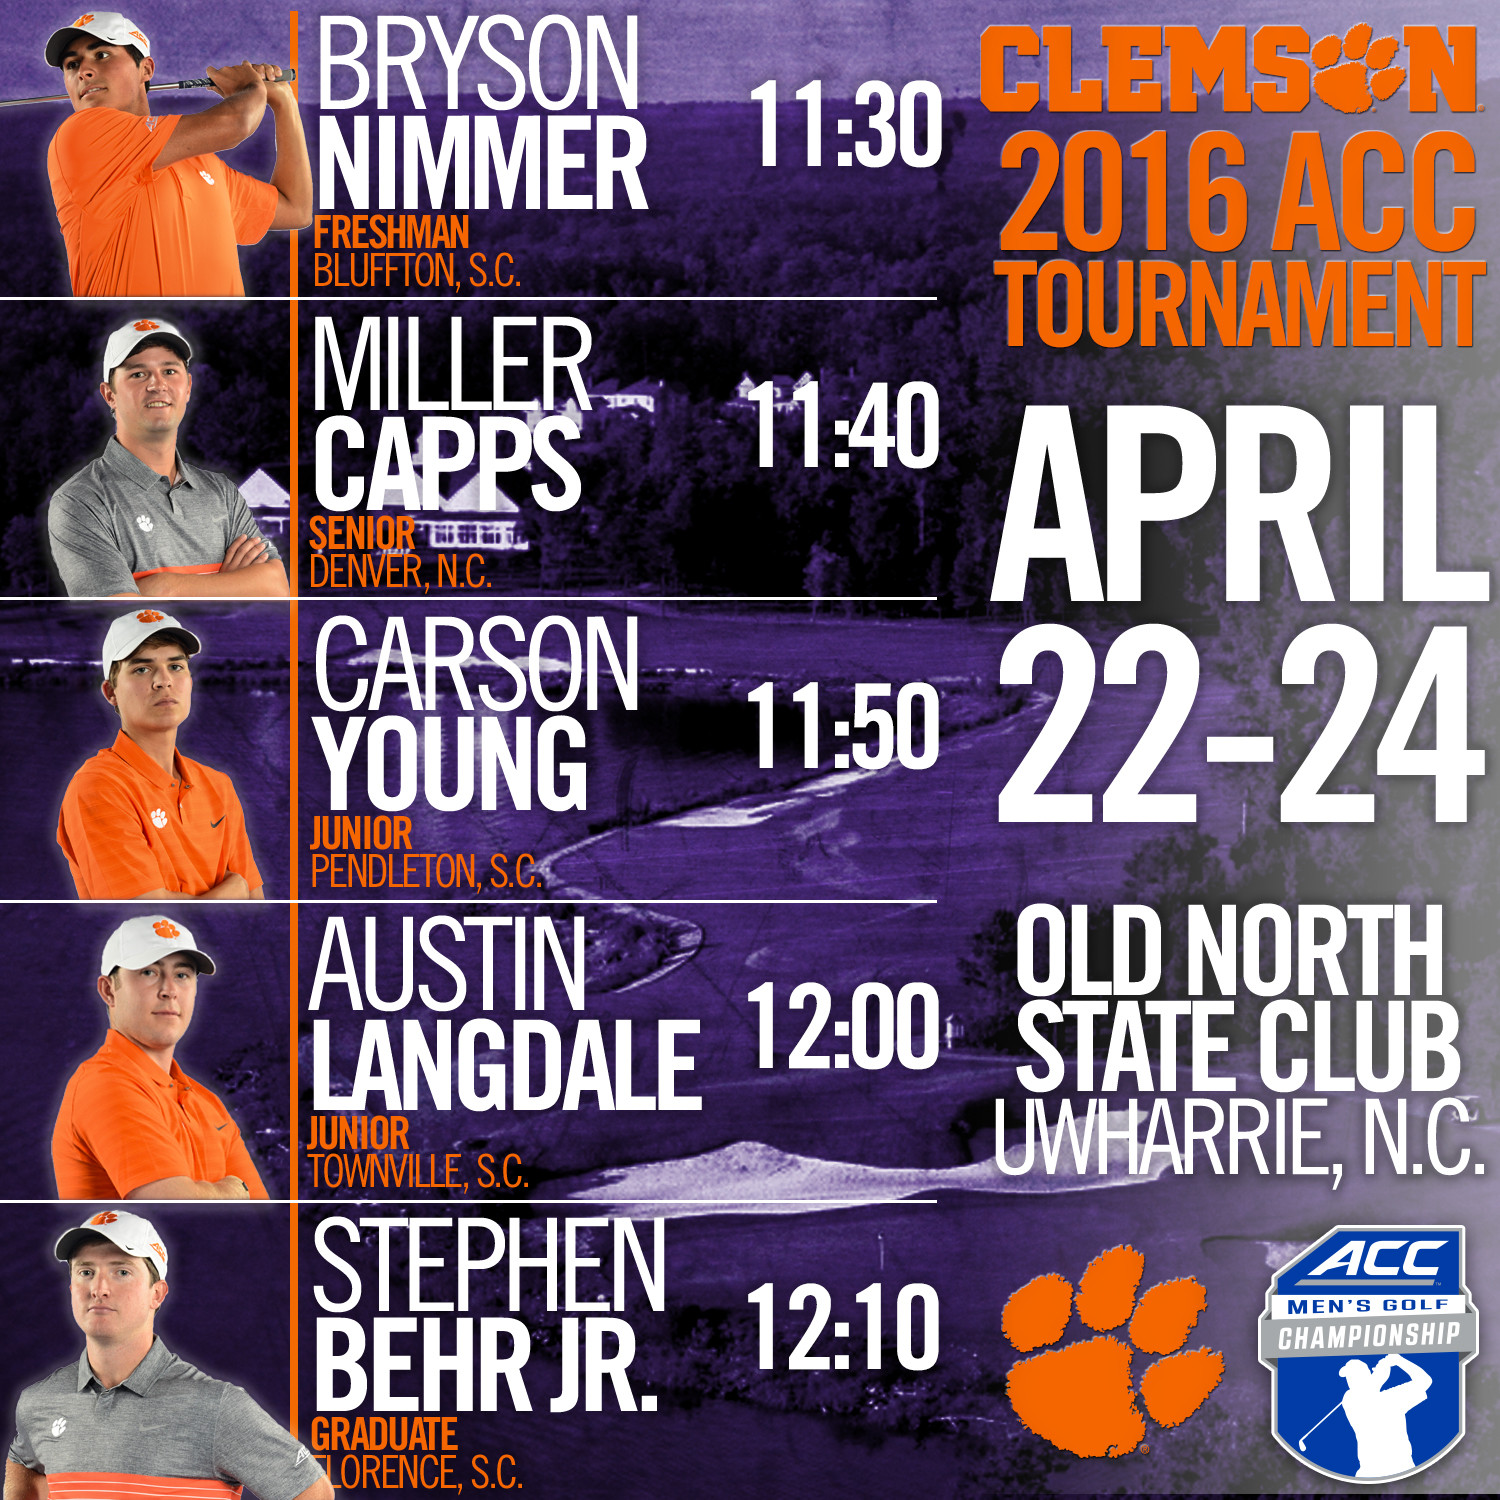 Clemson Heads to ACC Tournament